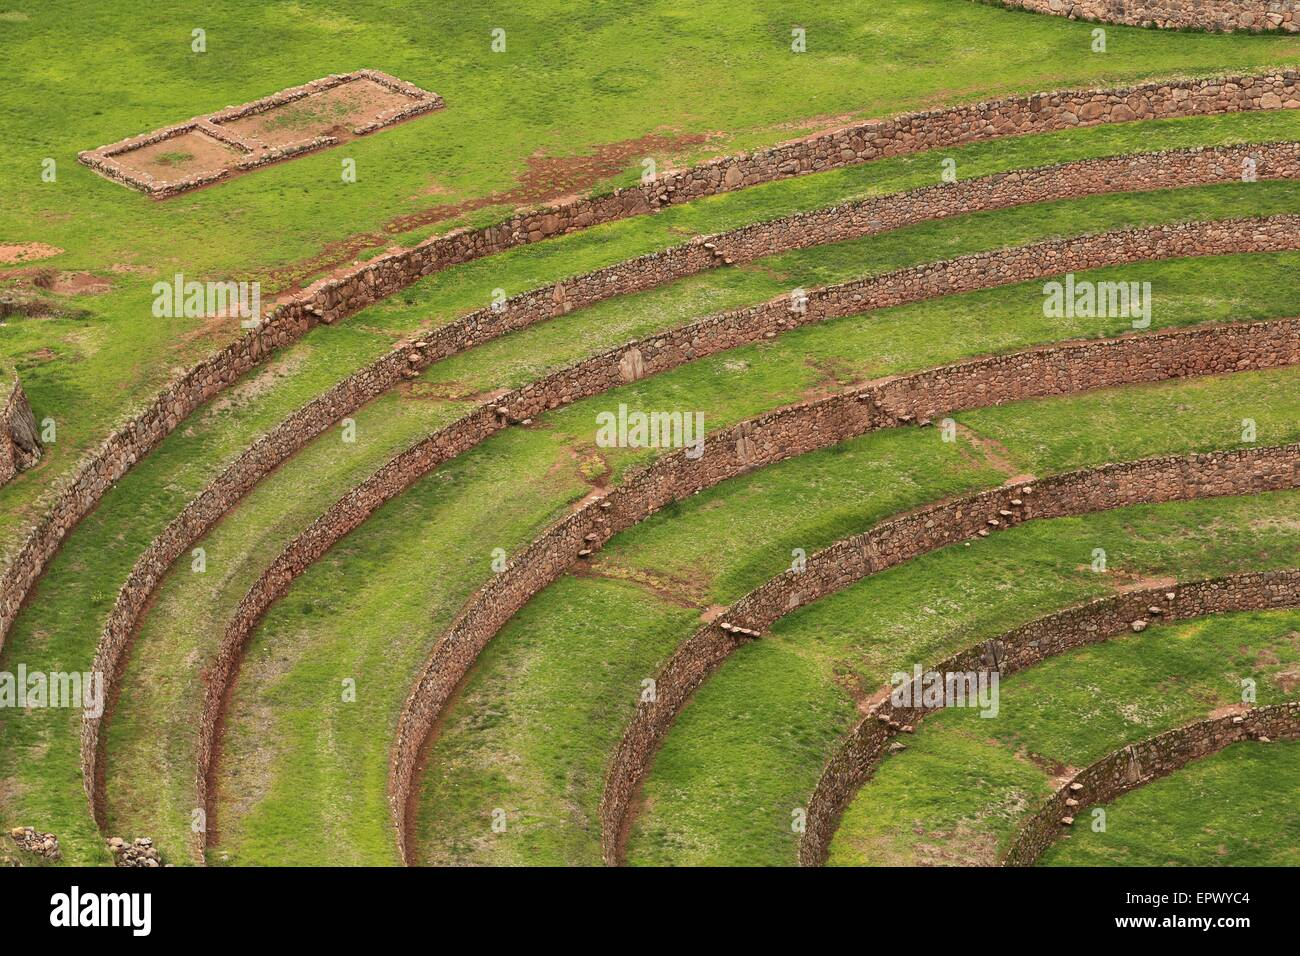 Mountain living near cusco peru royalty free stock photo - Circular Inca Ruins At Moray In The Sacred Valley Near Cusco Peru Thought To Be